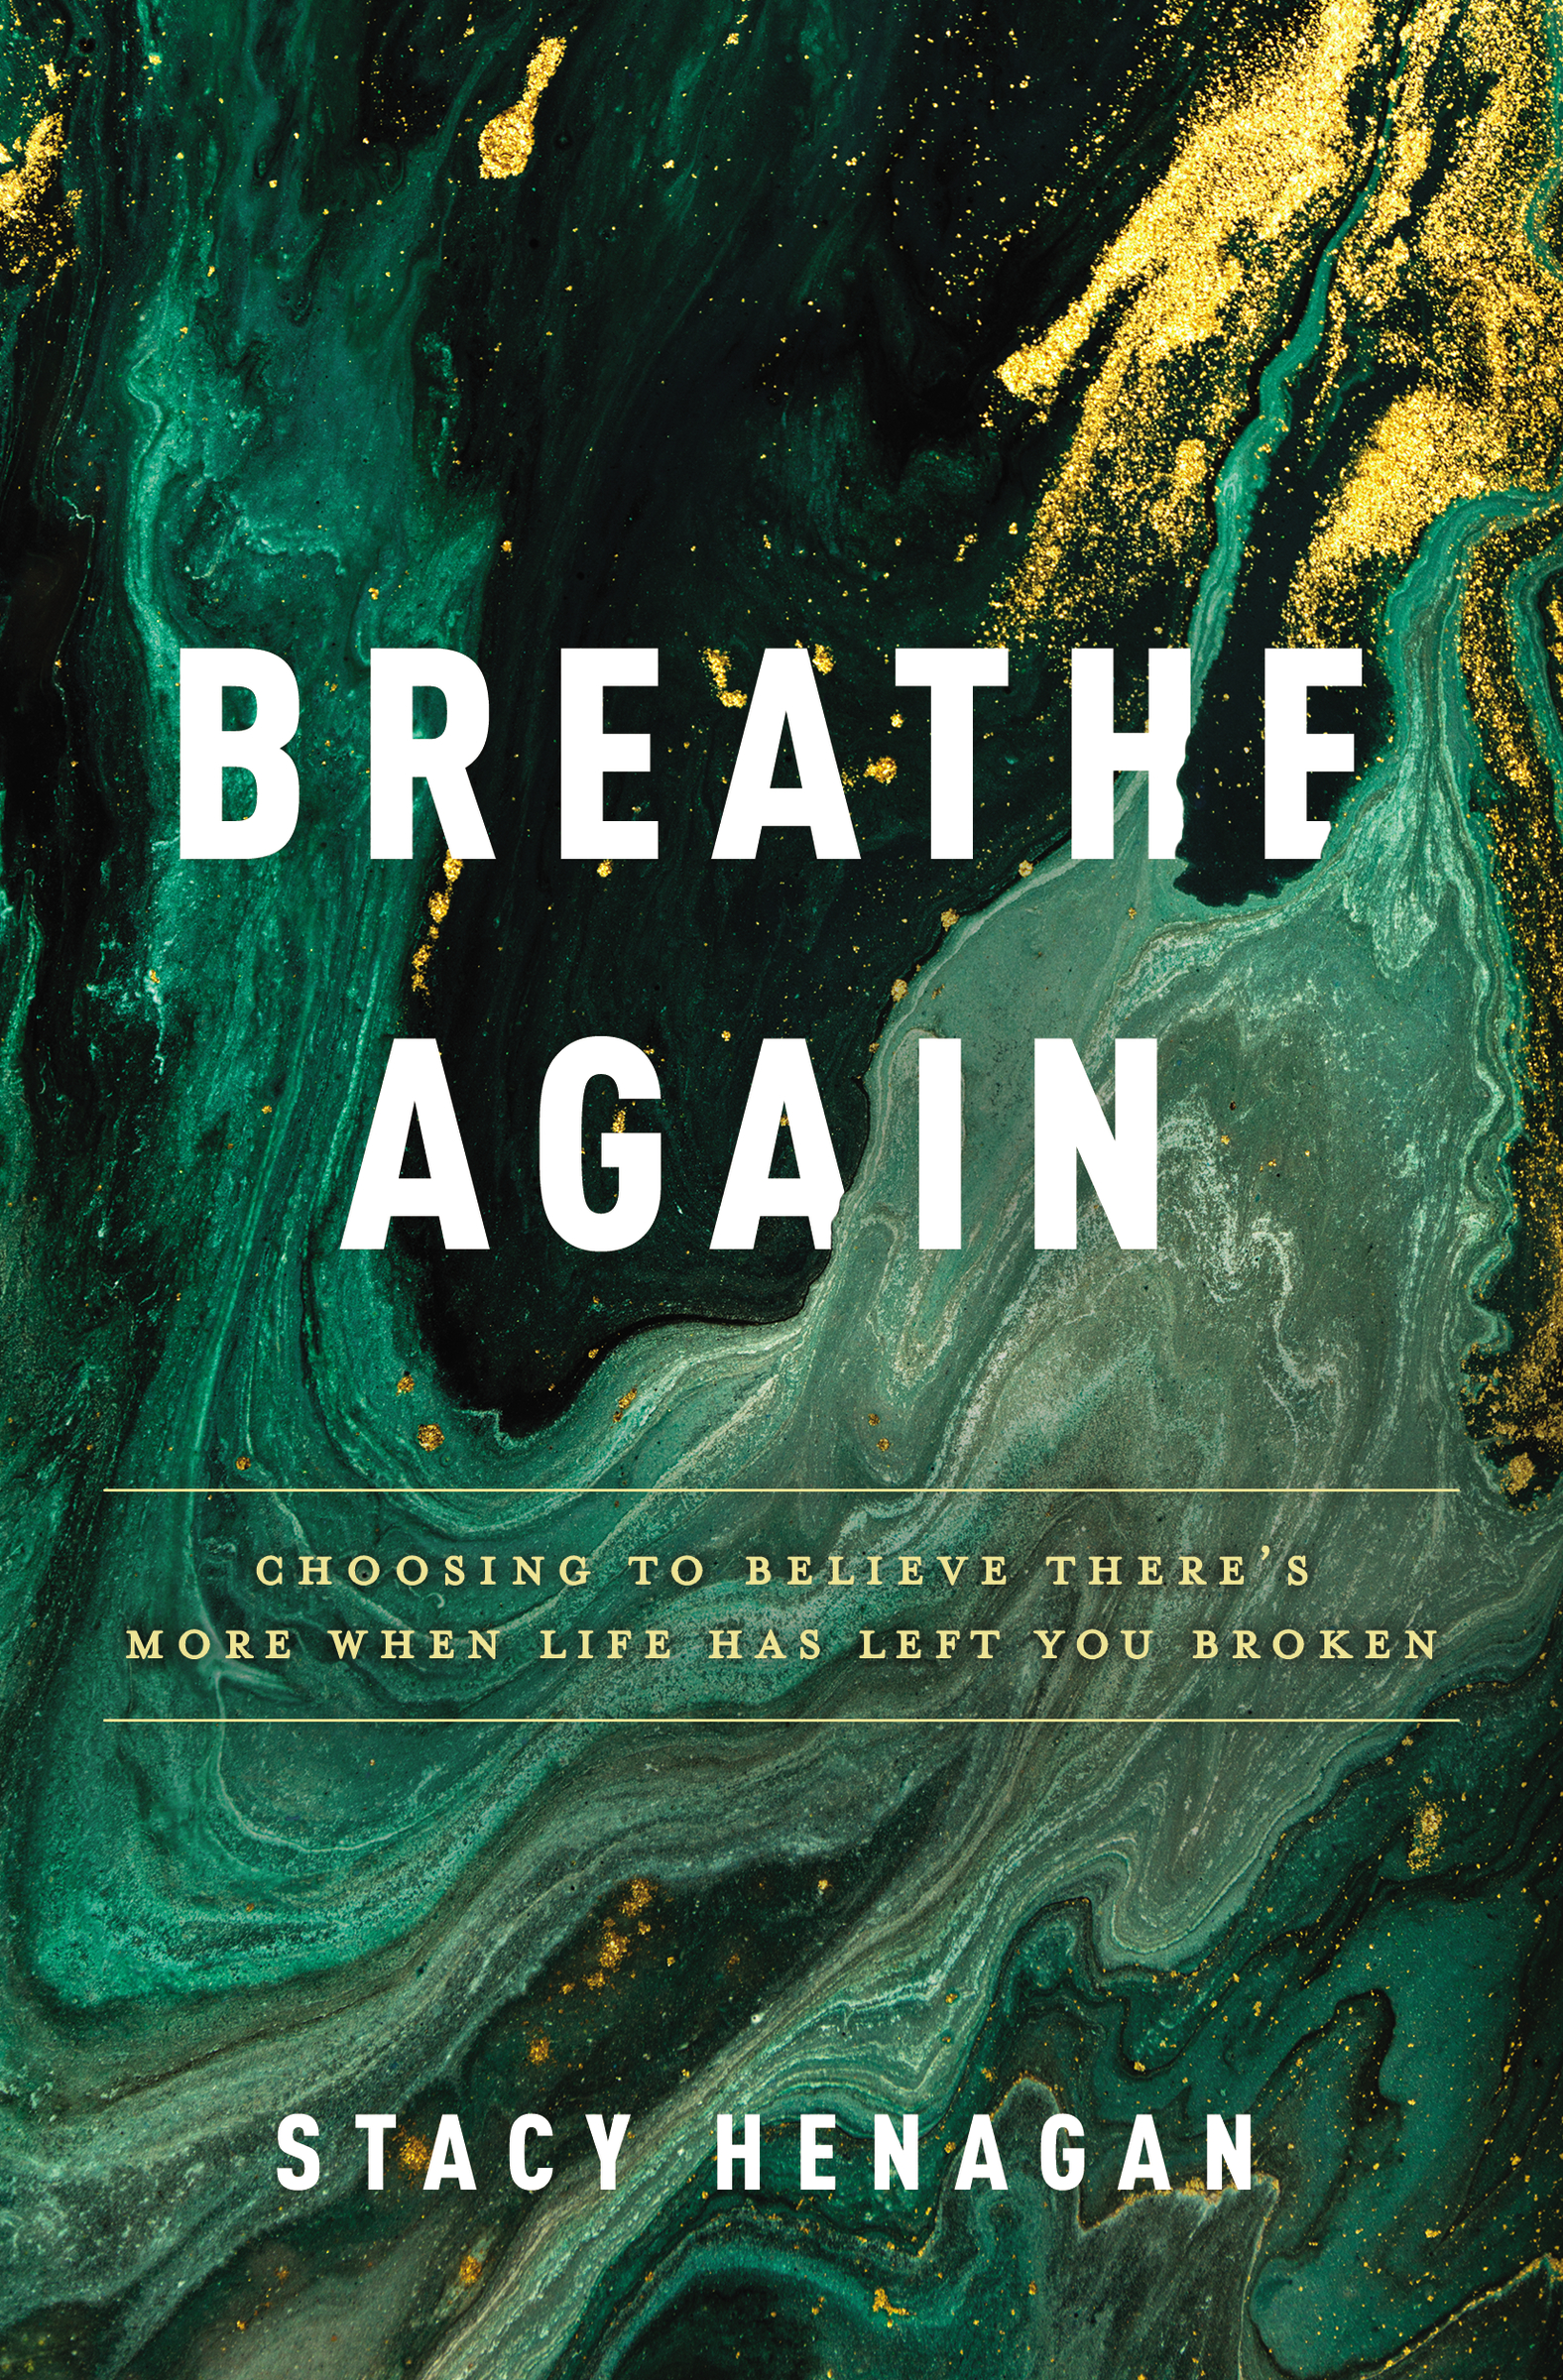 Breathe Again Choosing to Believe There's More When Life Has Left You Broken